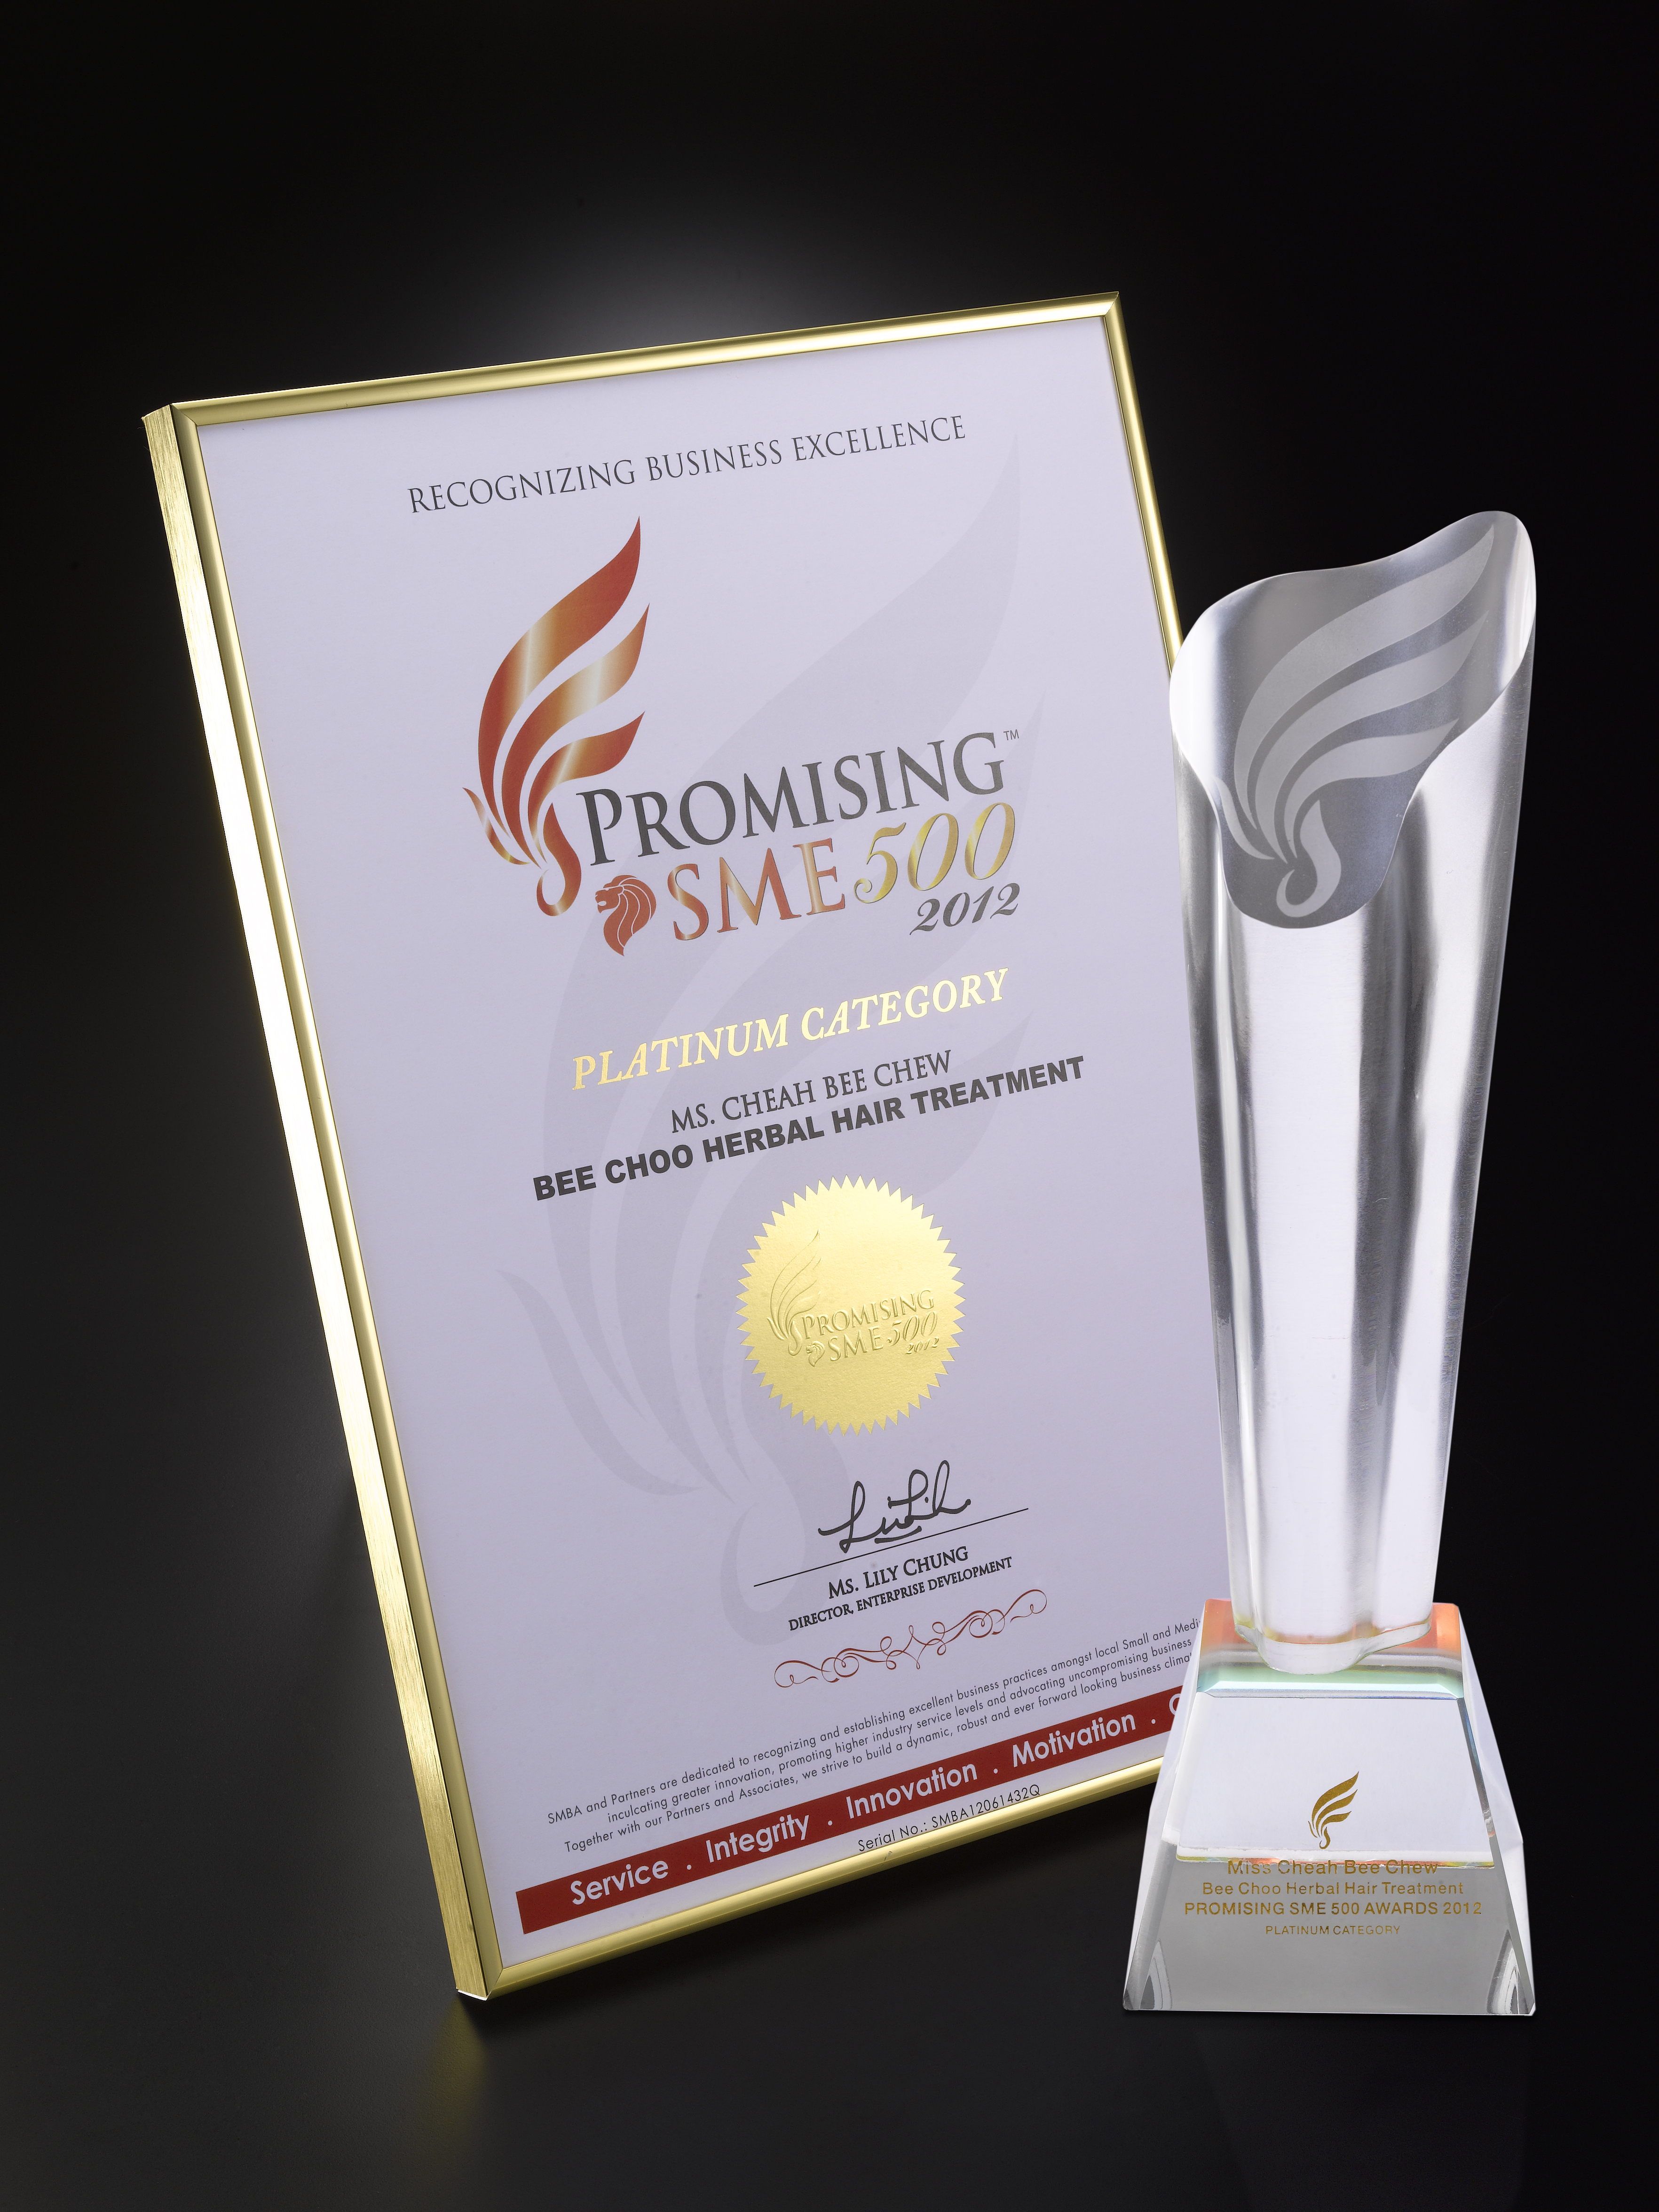 03-01.Promising SME 500 2012 Logo White1.jpg